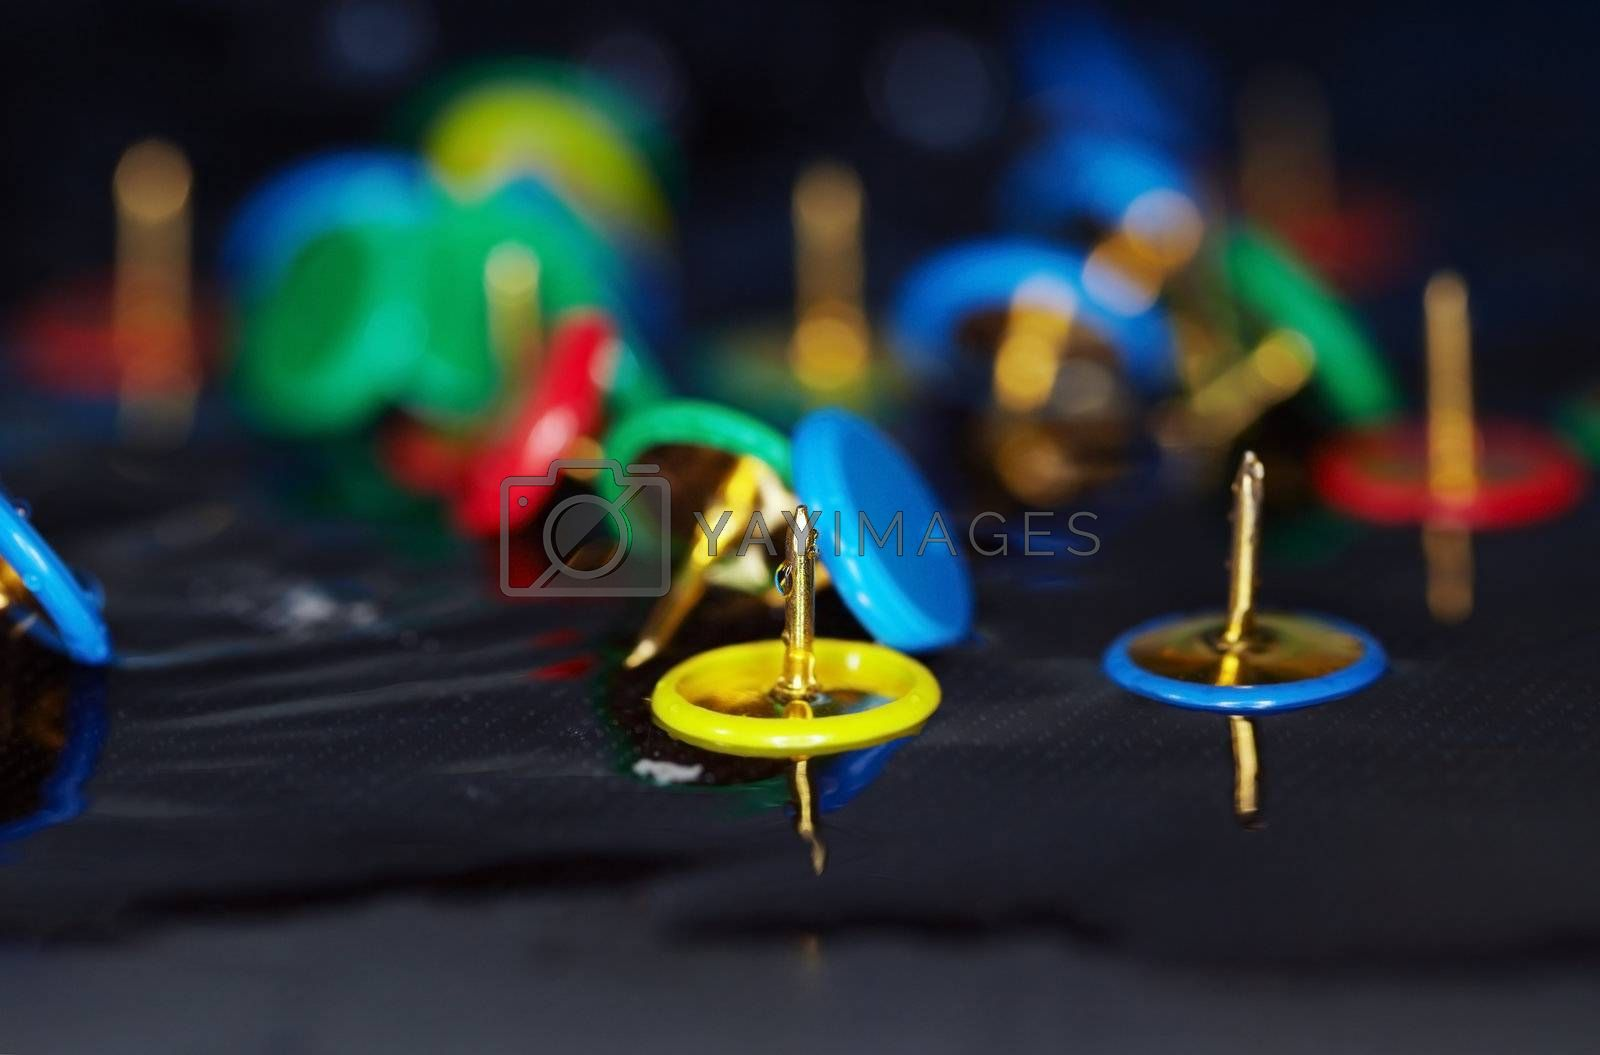 Extremely close-up macro photo of the pushpins in the water. Shallow depth of field and vibrant color for natural view